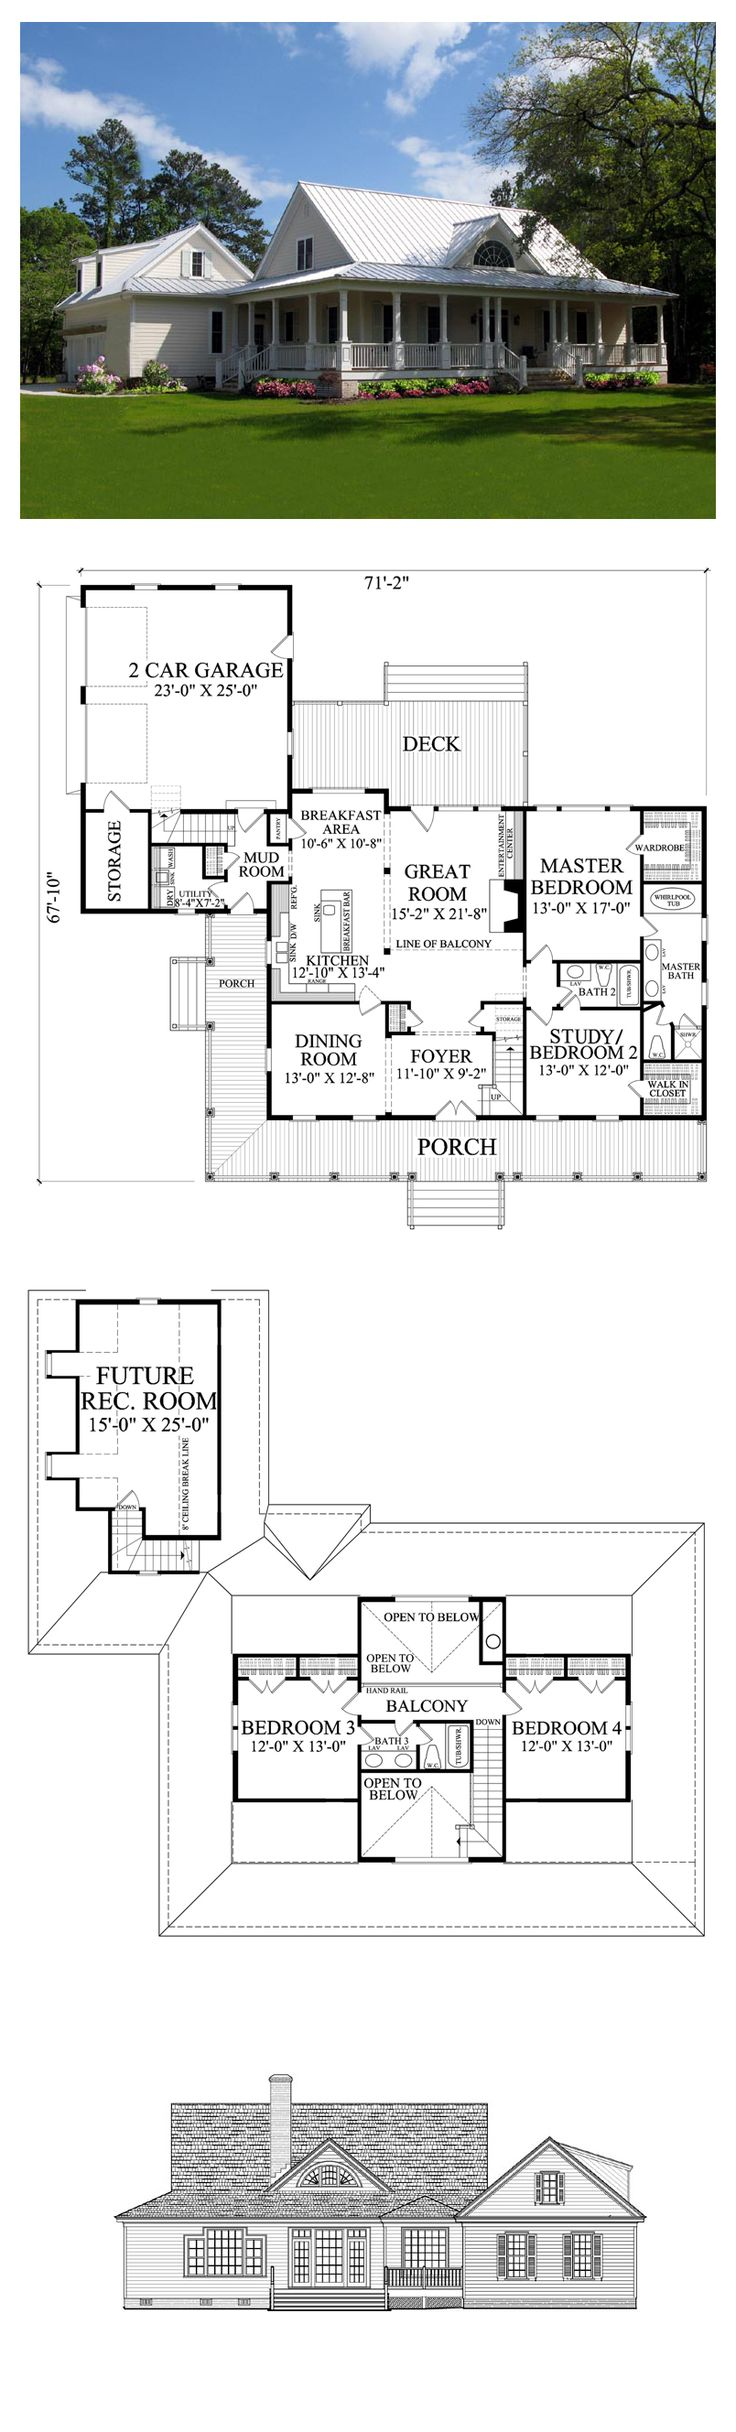 Country Style COOL House Plan ID: chp-47632 | Total Living Area: 2553 sq. ft…